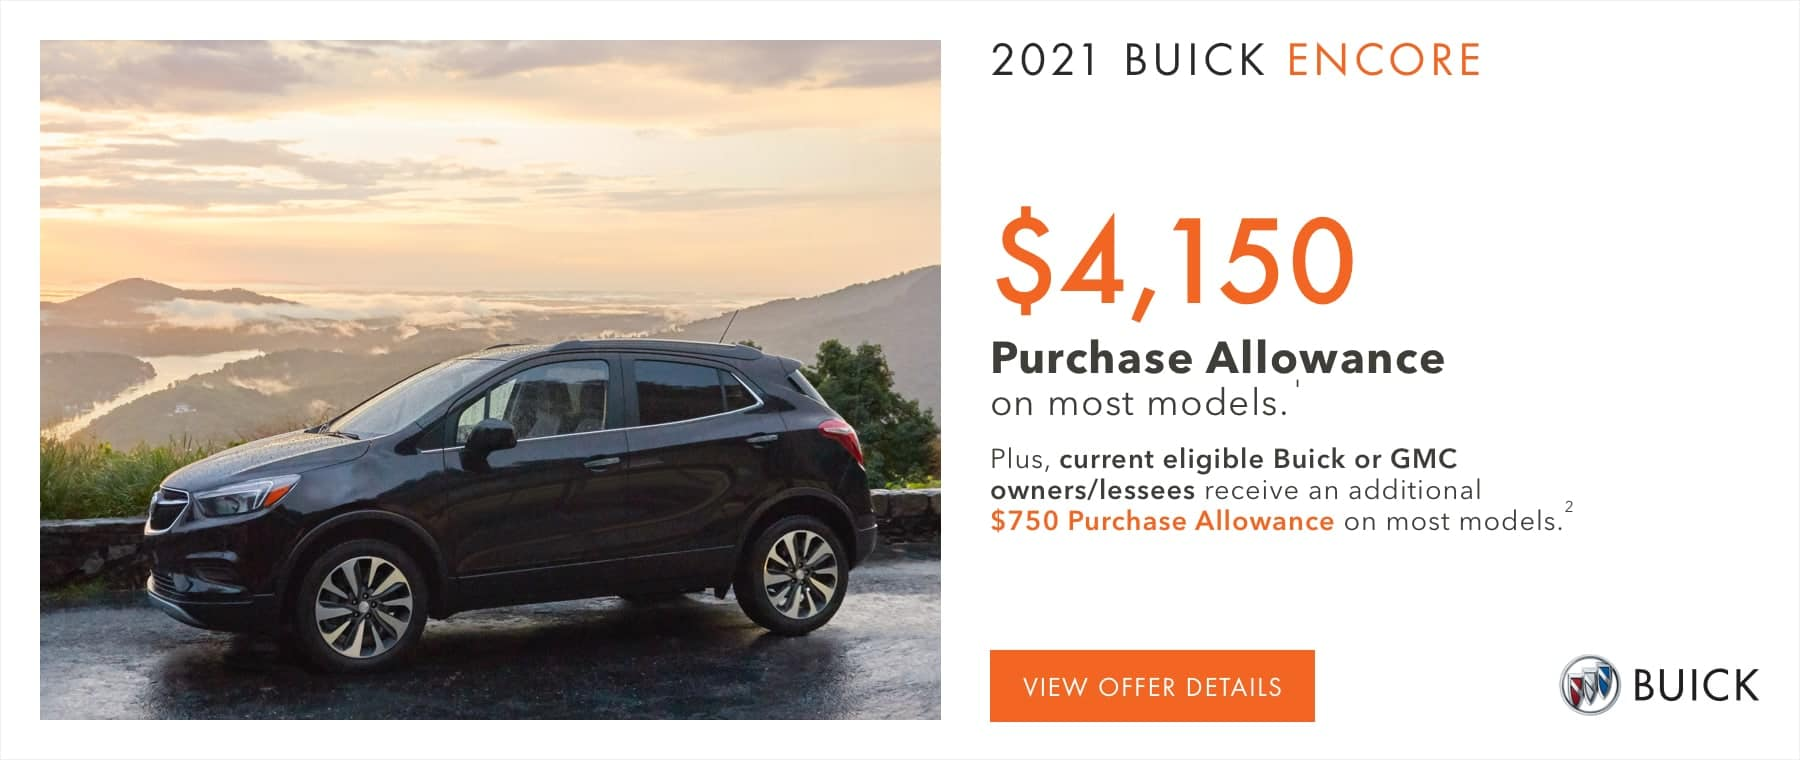 $4,150 Purchase Allowance on most models.1 Plus, current eligible Buick or GMC owners/lessees receive an additional $750 Purchase Allowance on most models.